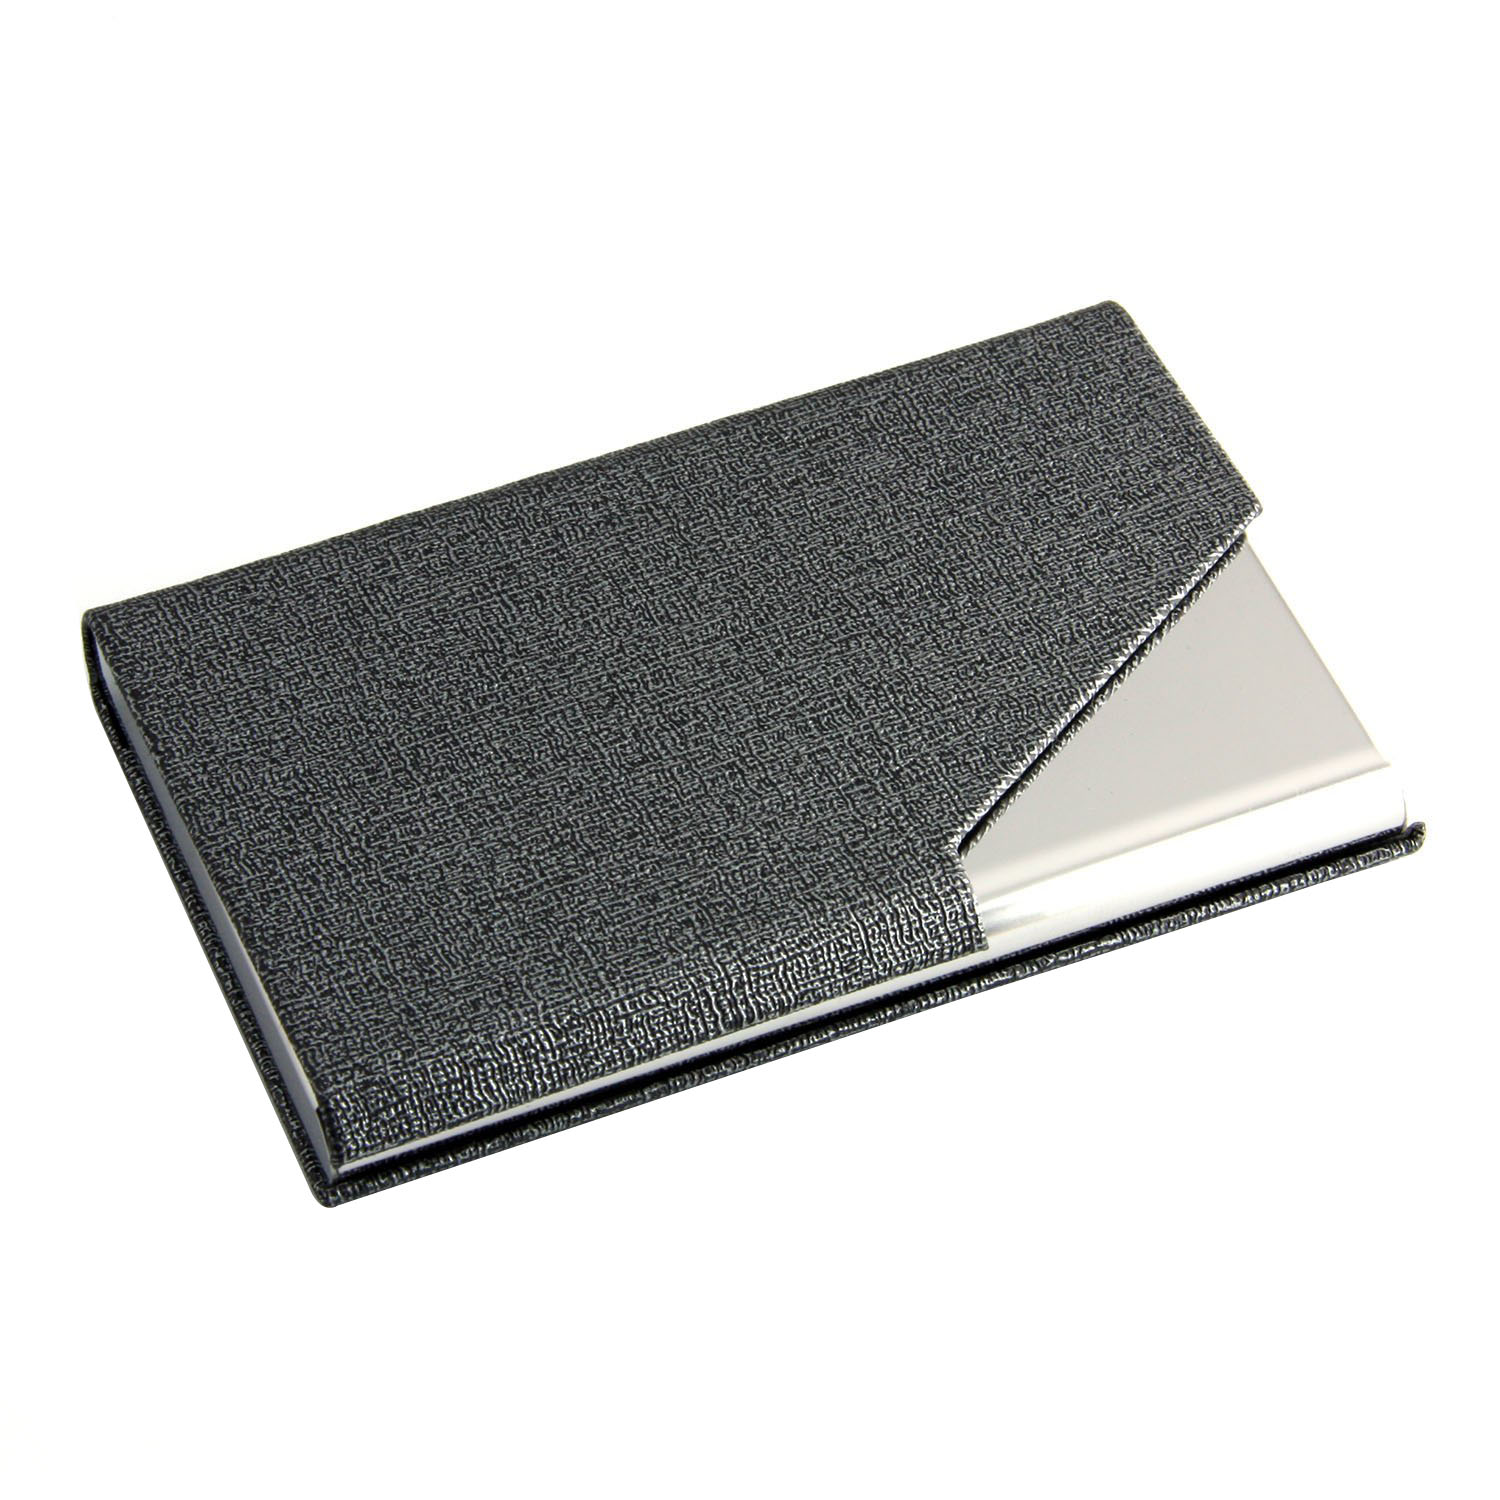 Business Name Card Holder Luxury PU Leather ,Wallet Credit card ID Case Keep Your Business Cards Clean, with Magnetic Shut(Gray)